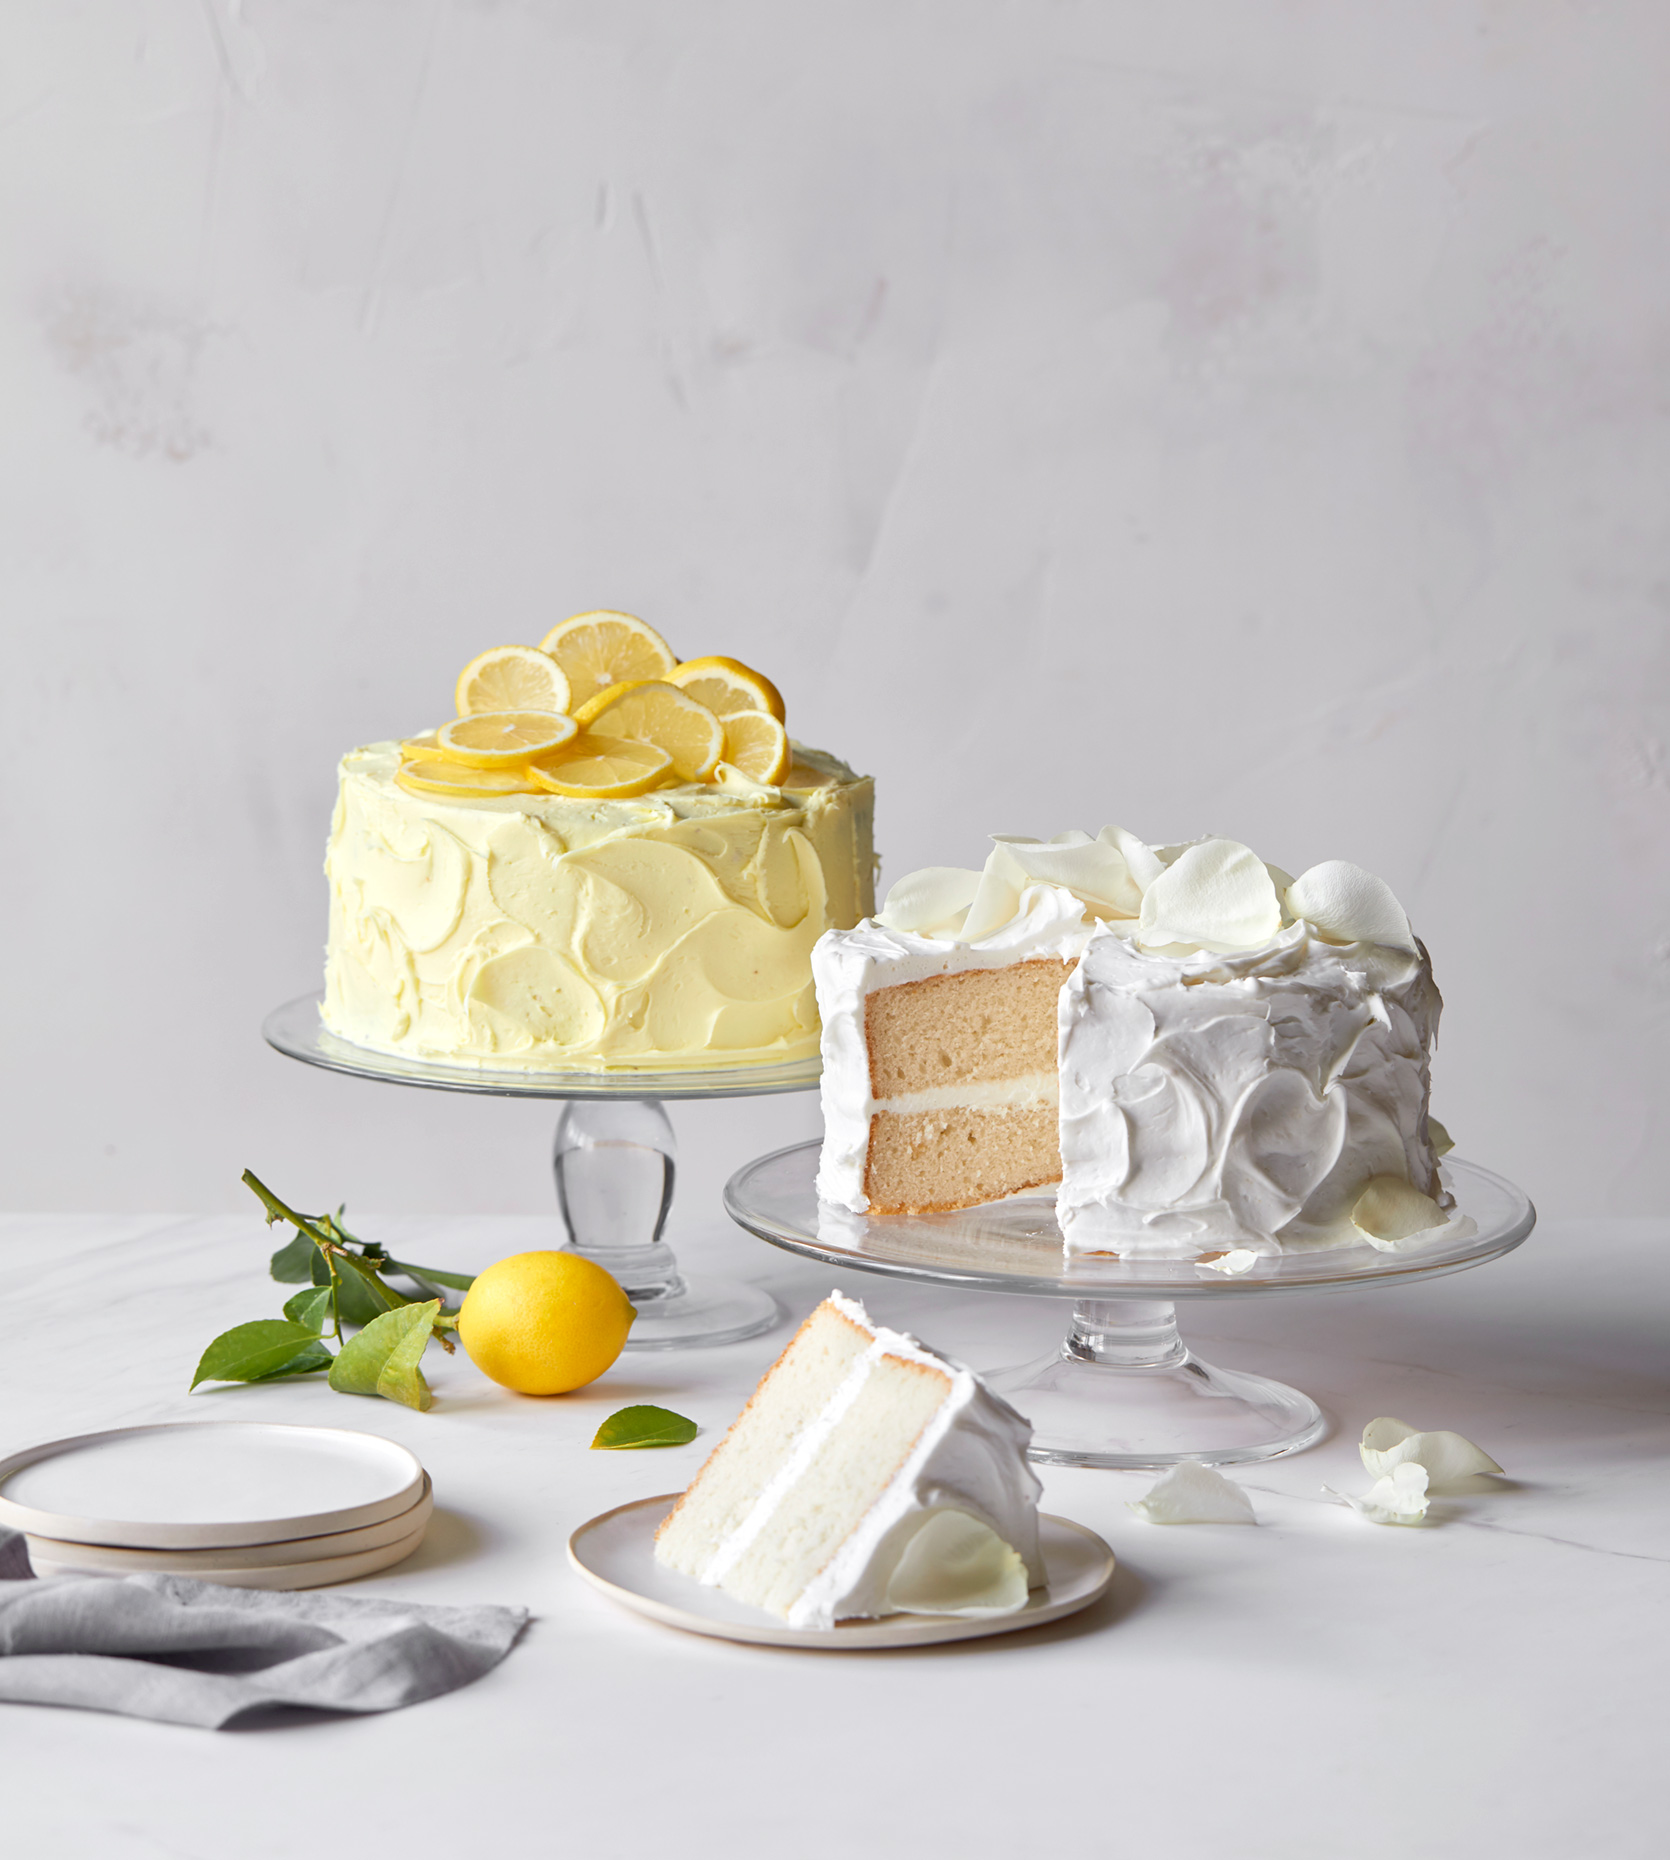 Cake photography by Los Angeles Food photographer Teri Lyn Fisher